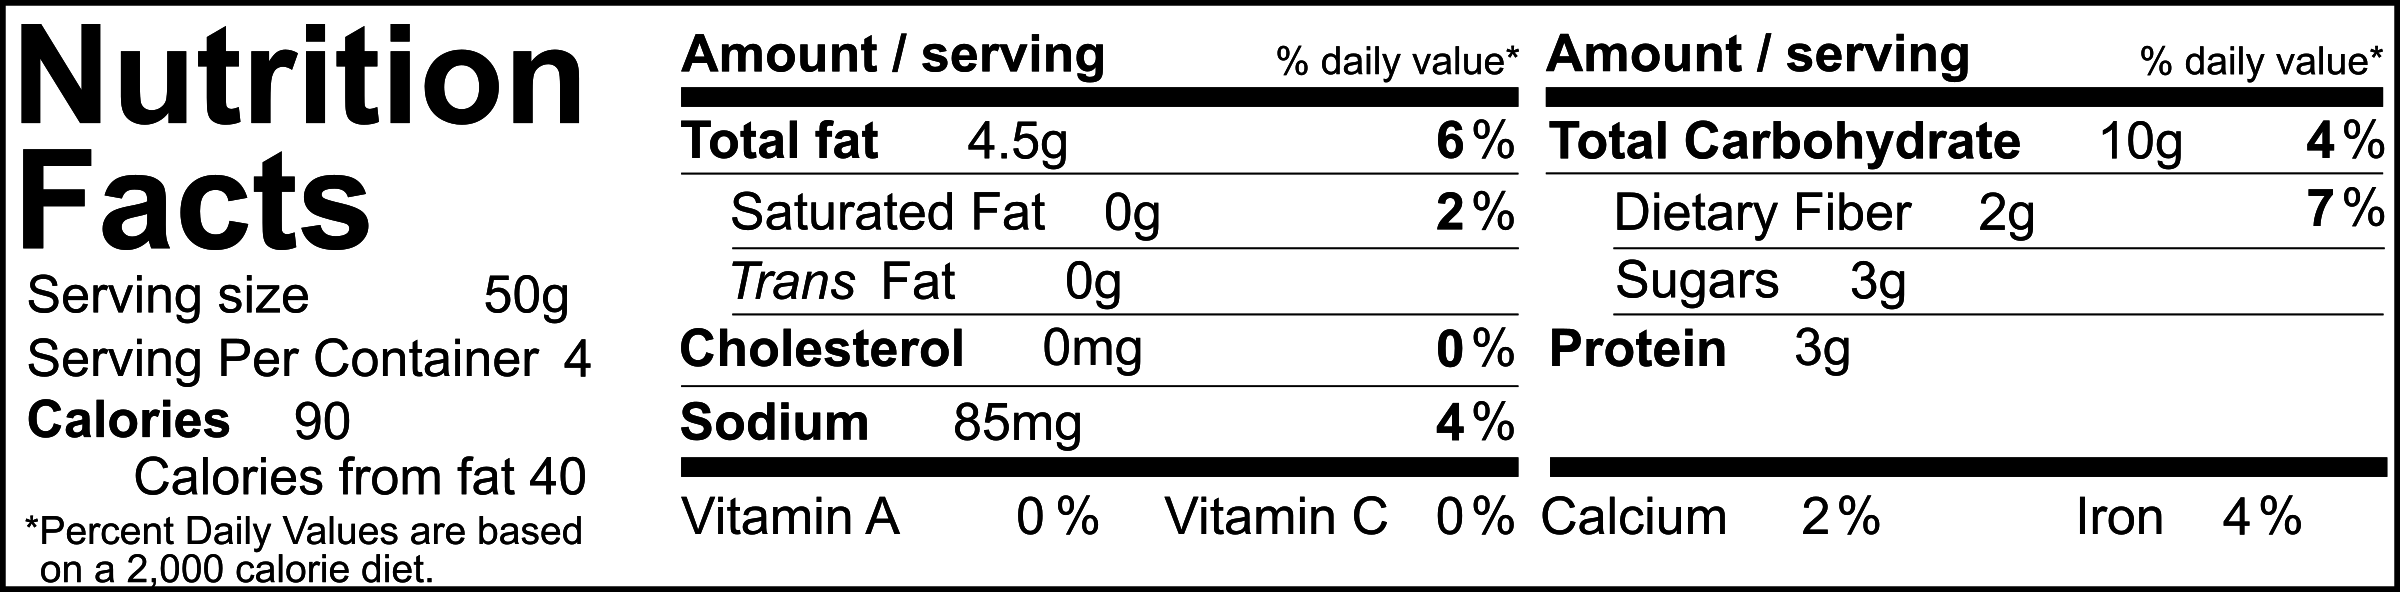 wgf-onion-pakora-nutrition-facts-29jan2018.png